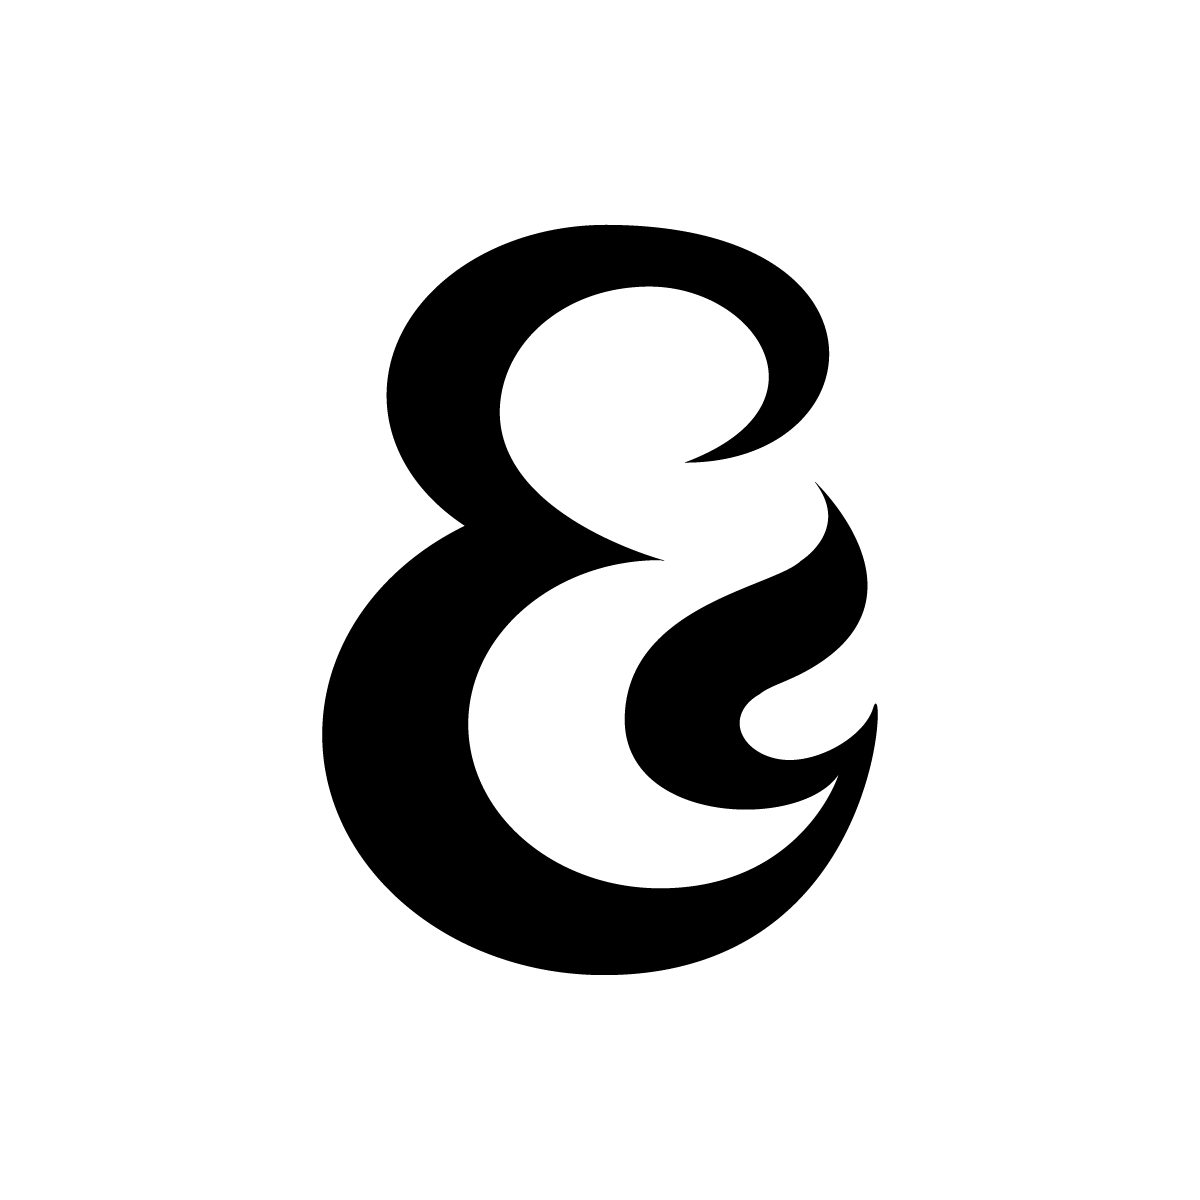 Letter E HD PNG - 117765